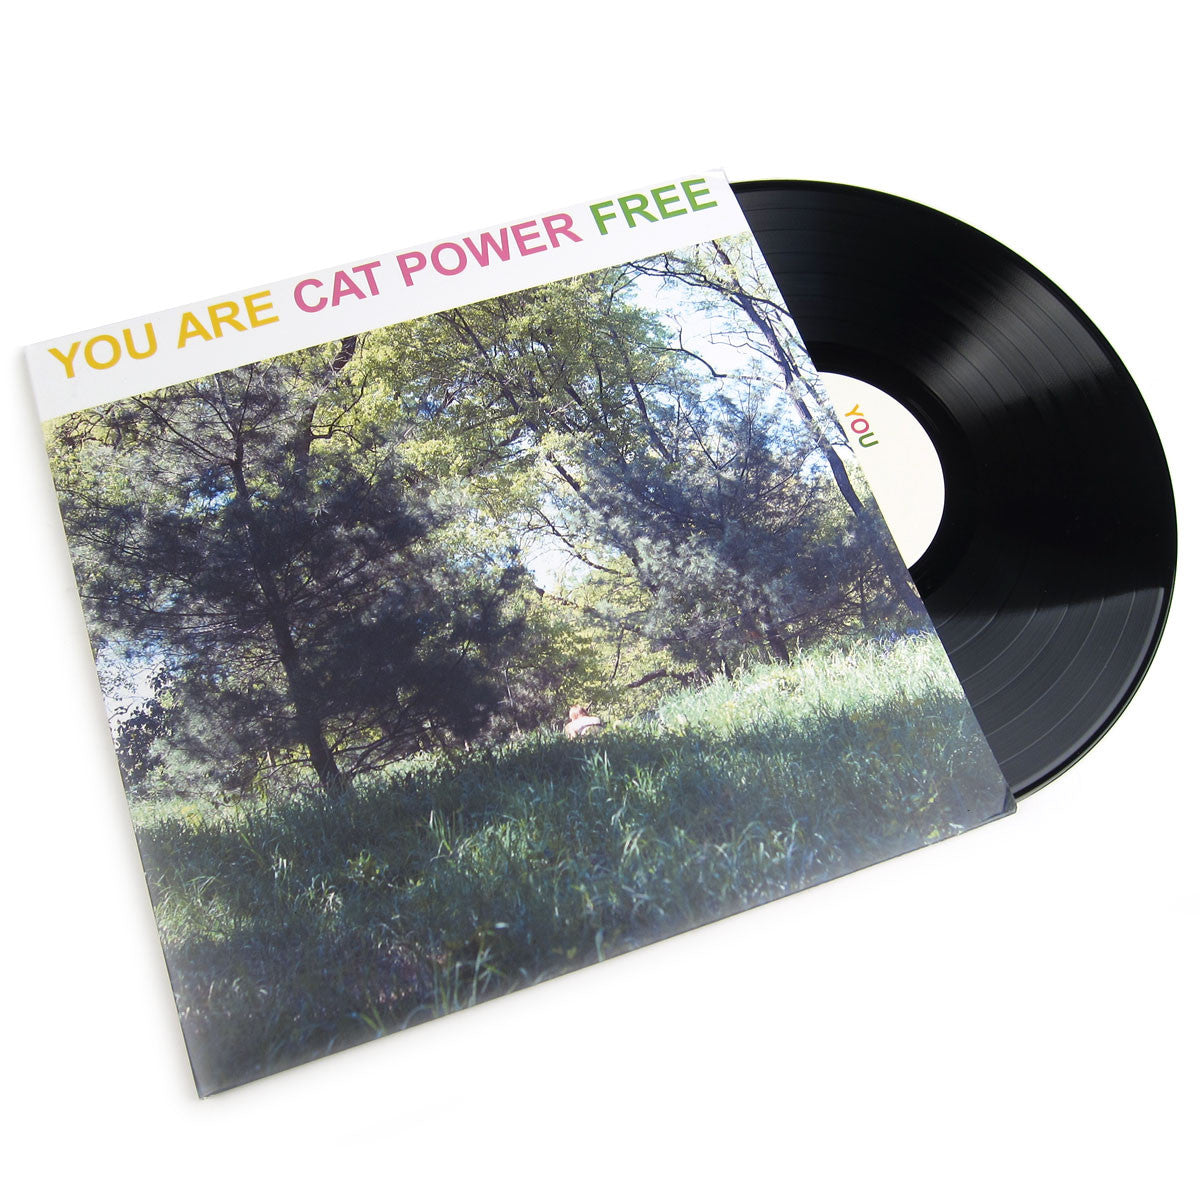 Cat Power: You Are Free (Free MP3) Vinyl LP